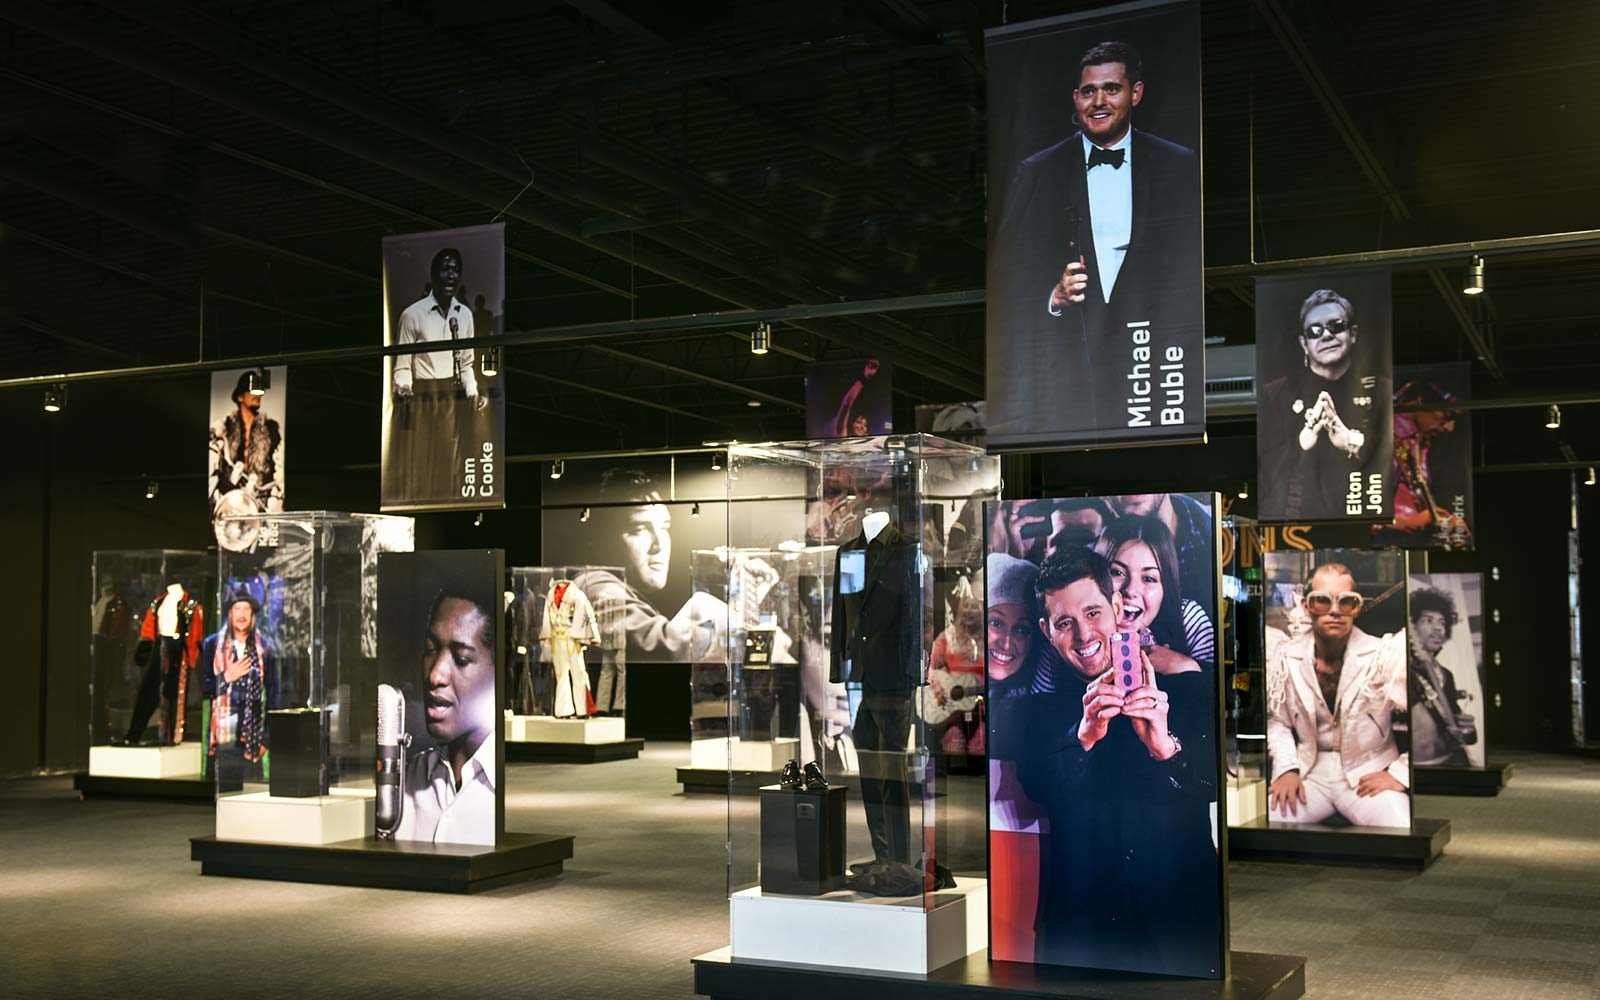 Elvis Presley's Memphis Opens at Graceland